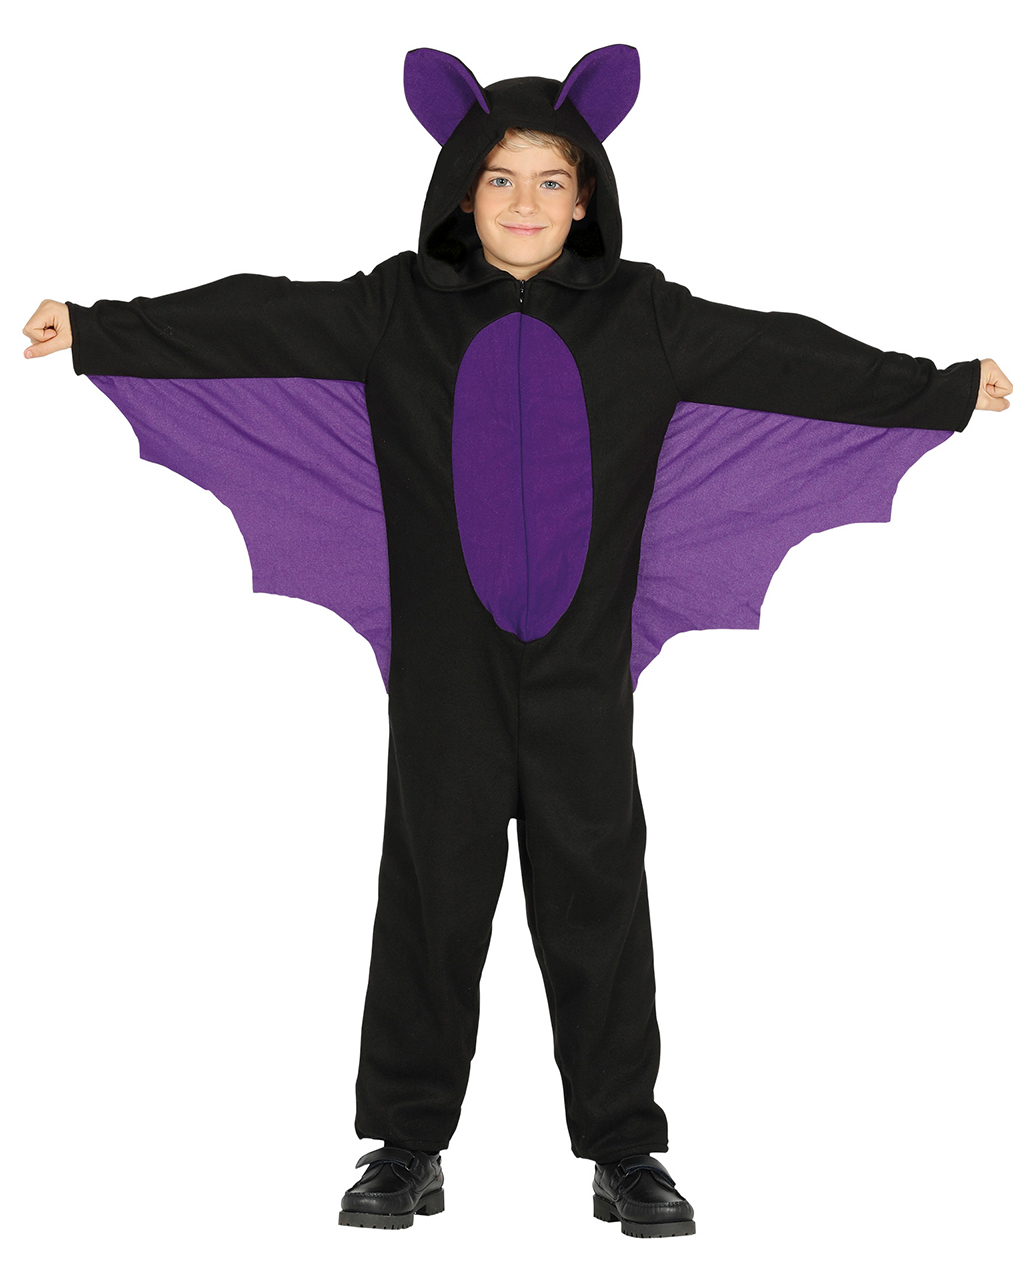 sc 1 st  Horror-Shop.com & Bat Costume With Wings and hood | horror-shop.com